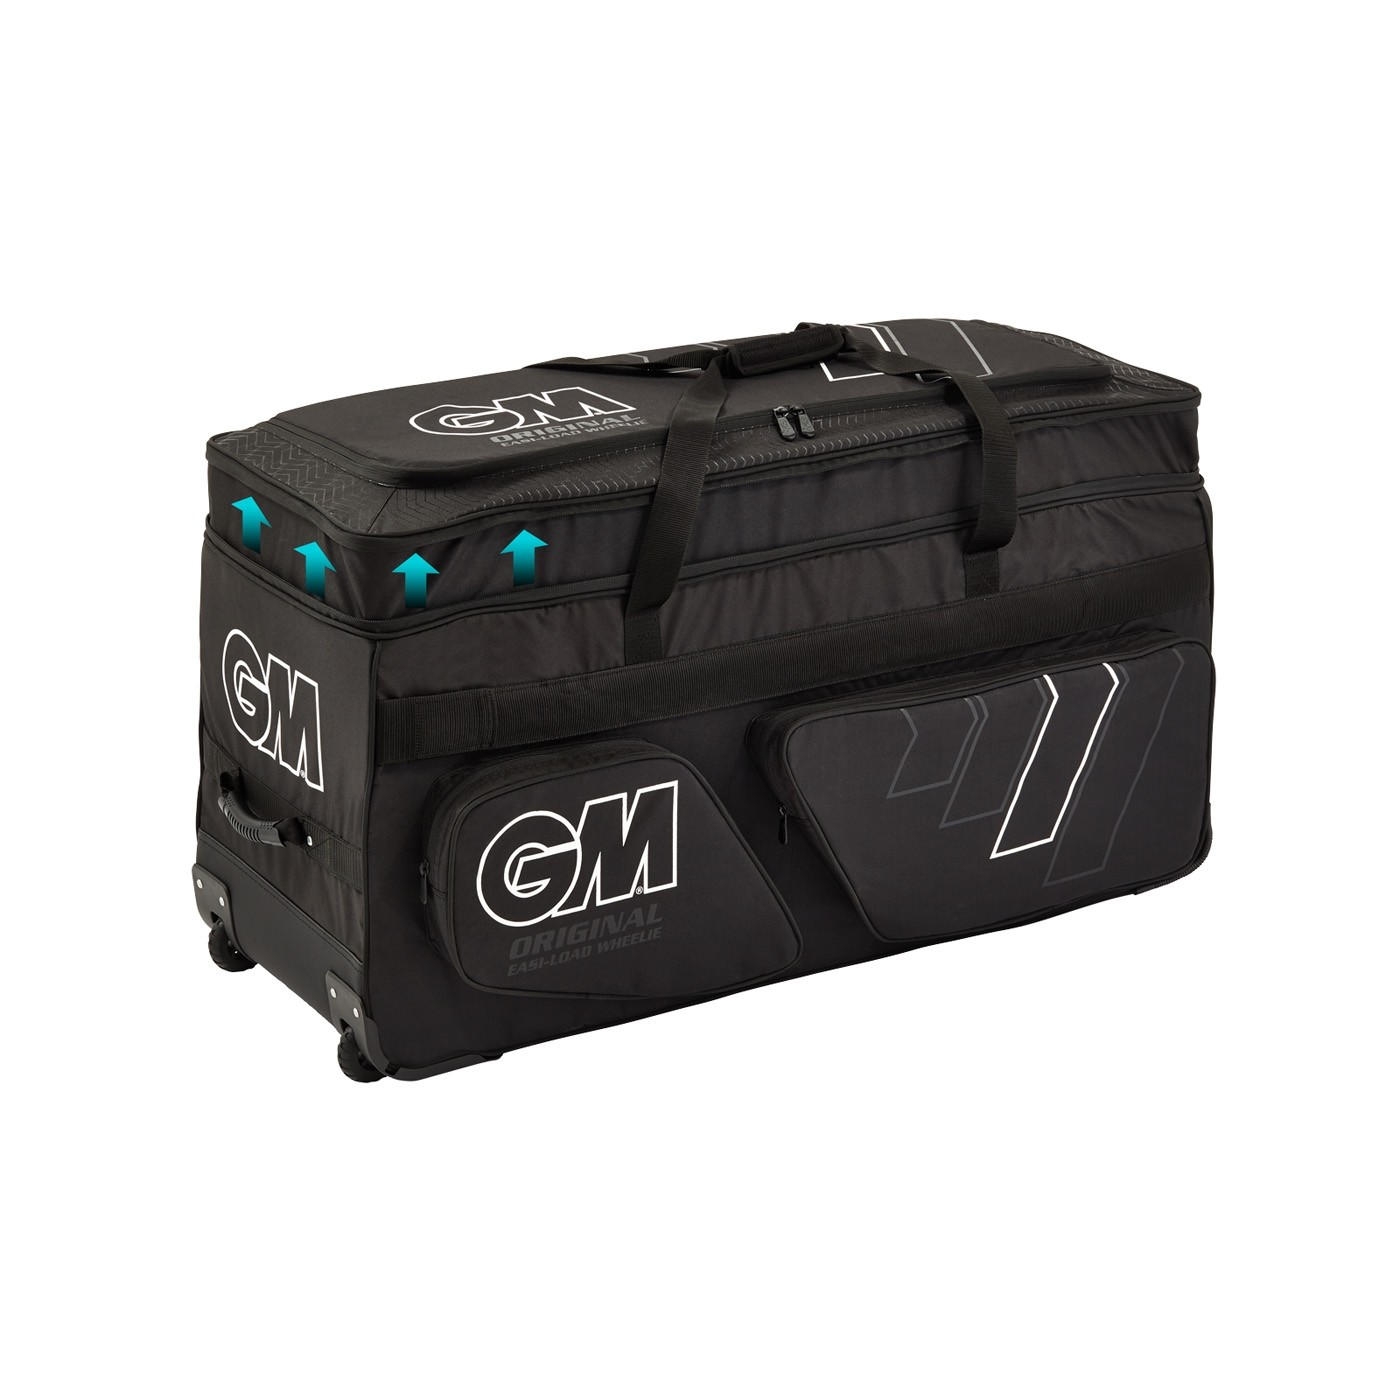 2020 Gunn and Moore Original Easi-Load Wheelie Cricket Bag